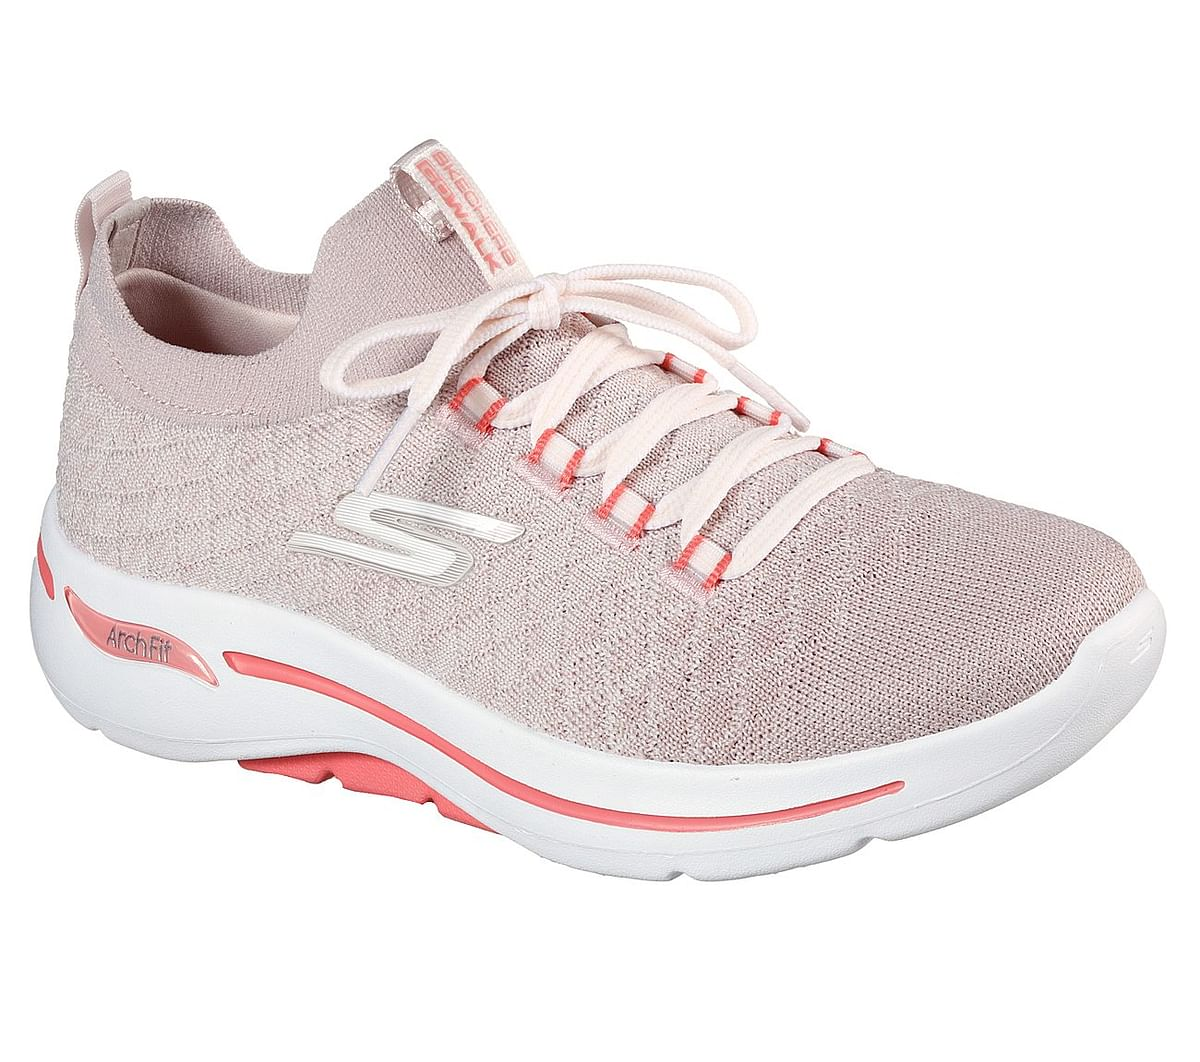 """<div class=""""paragraphs""""><p>Shop the latest ArchFit collection at <strong><a href=""""https://www.skechers.in/arch-fit"""">Skechers.in</a>&nbsp;</strong>and at your nearest Skechers outlet.</p></div>"""